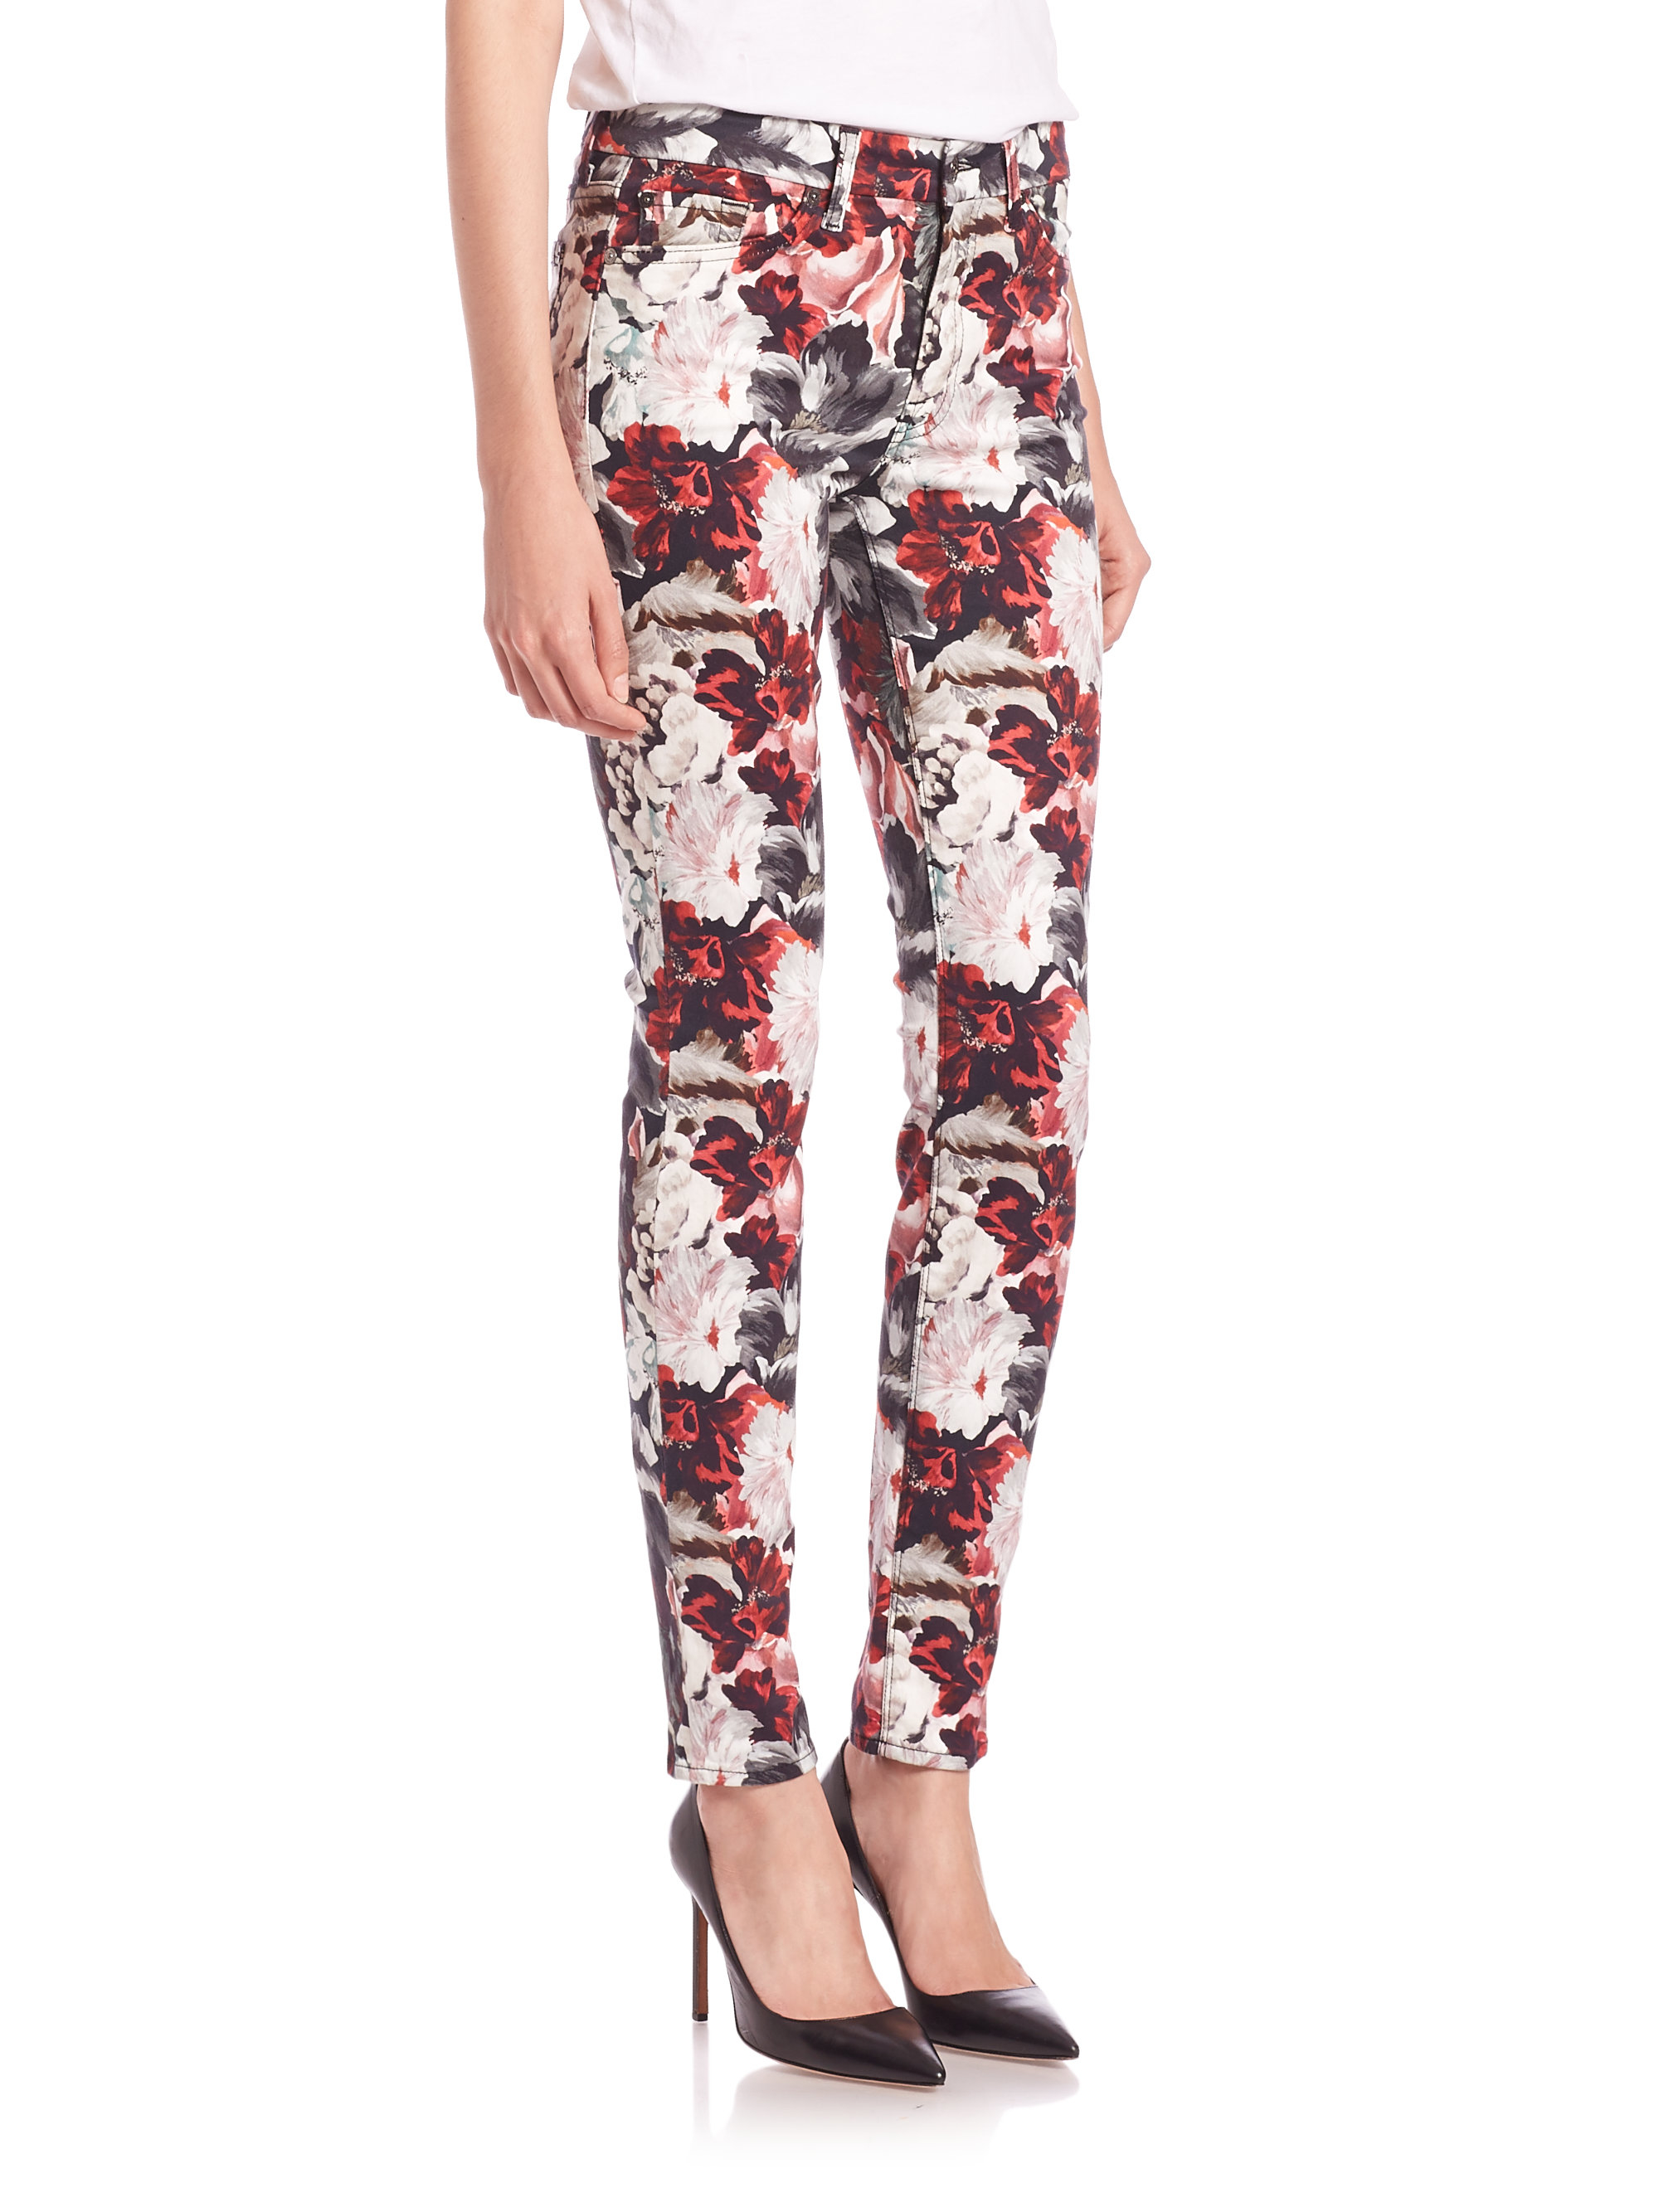 7 for all mankind Gallery Mid-rise Floral-print Skinny Jeans | Lyst